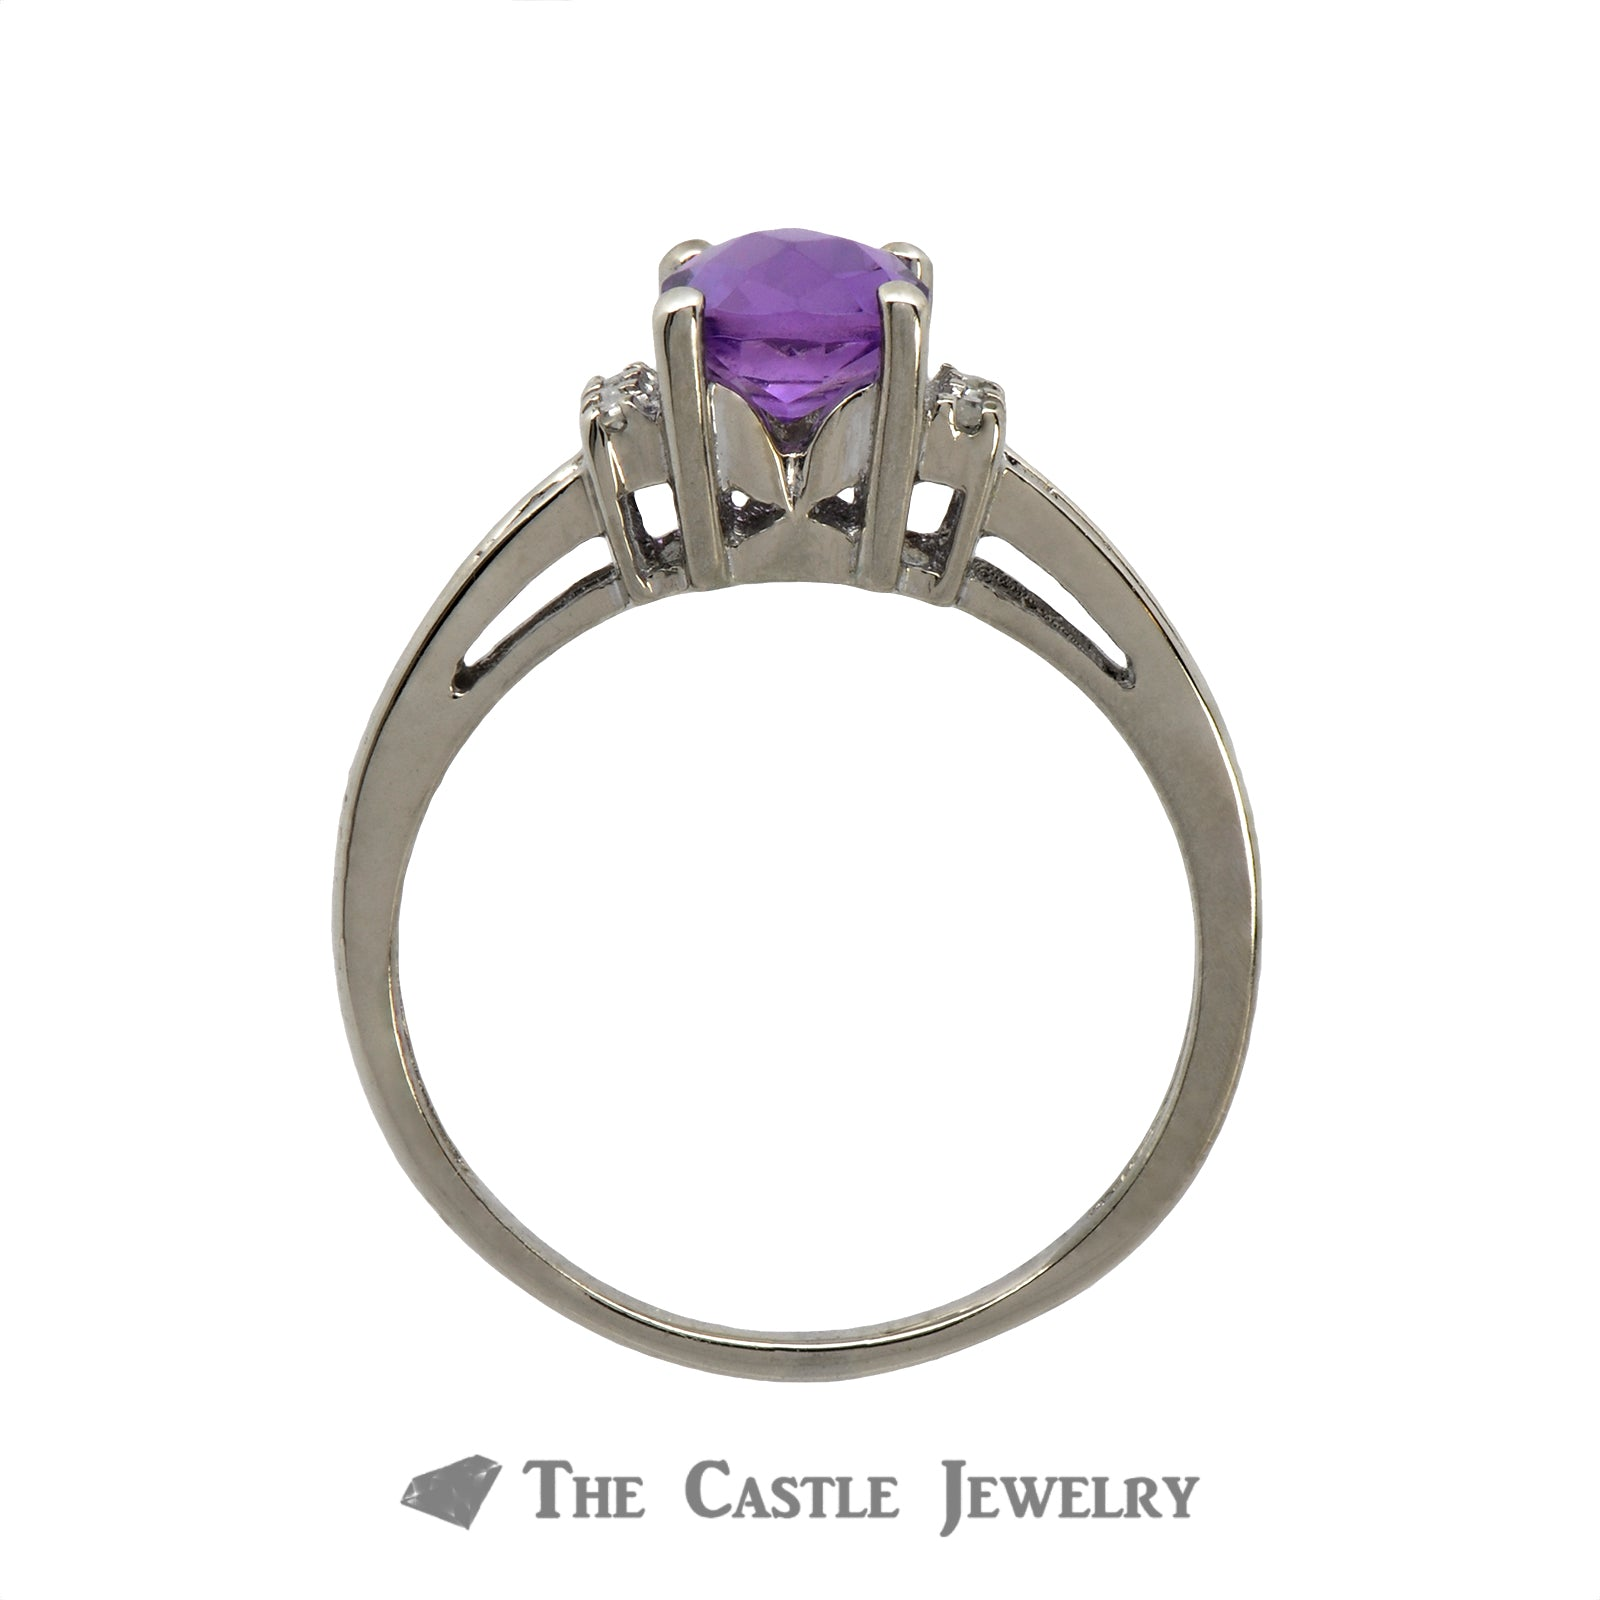 Fantasy Cut Amethyst Ring with Diamond Accents in 10K White Gold-1